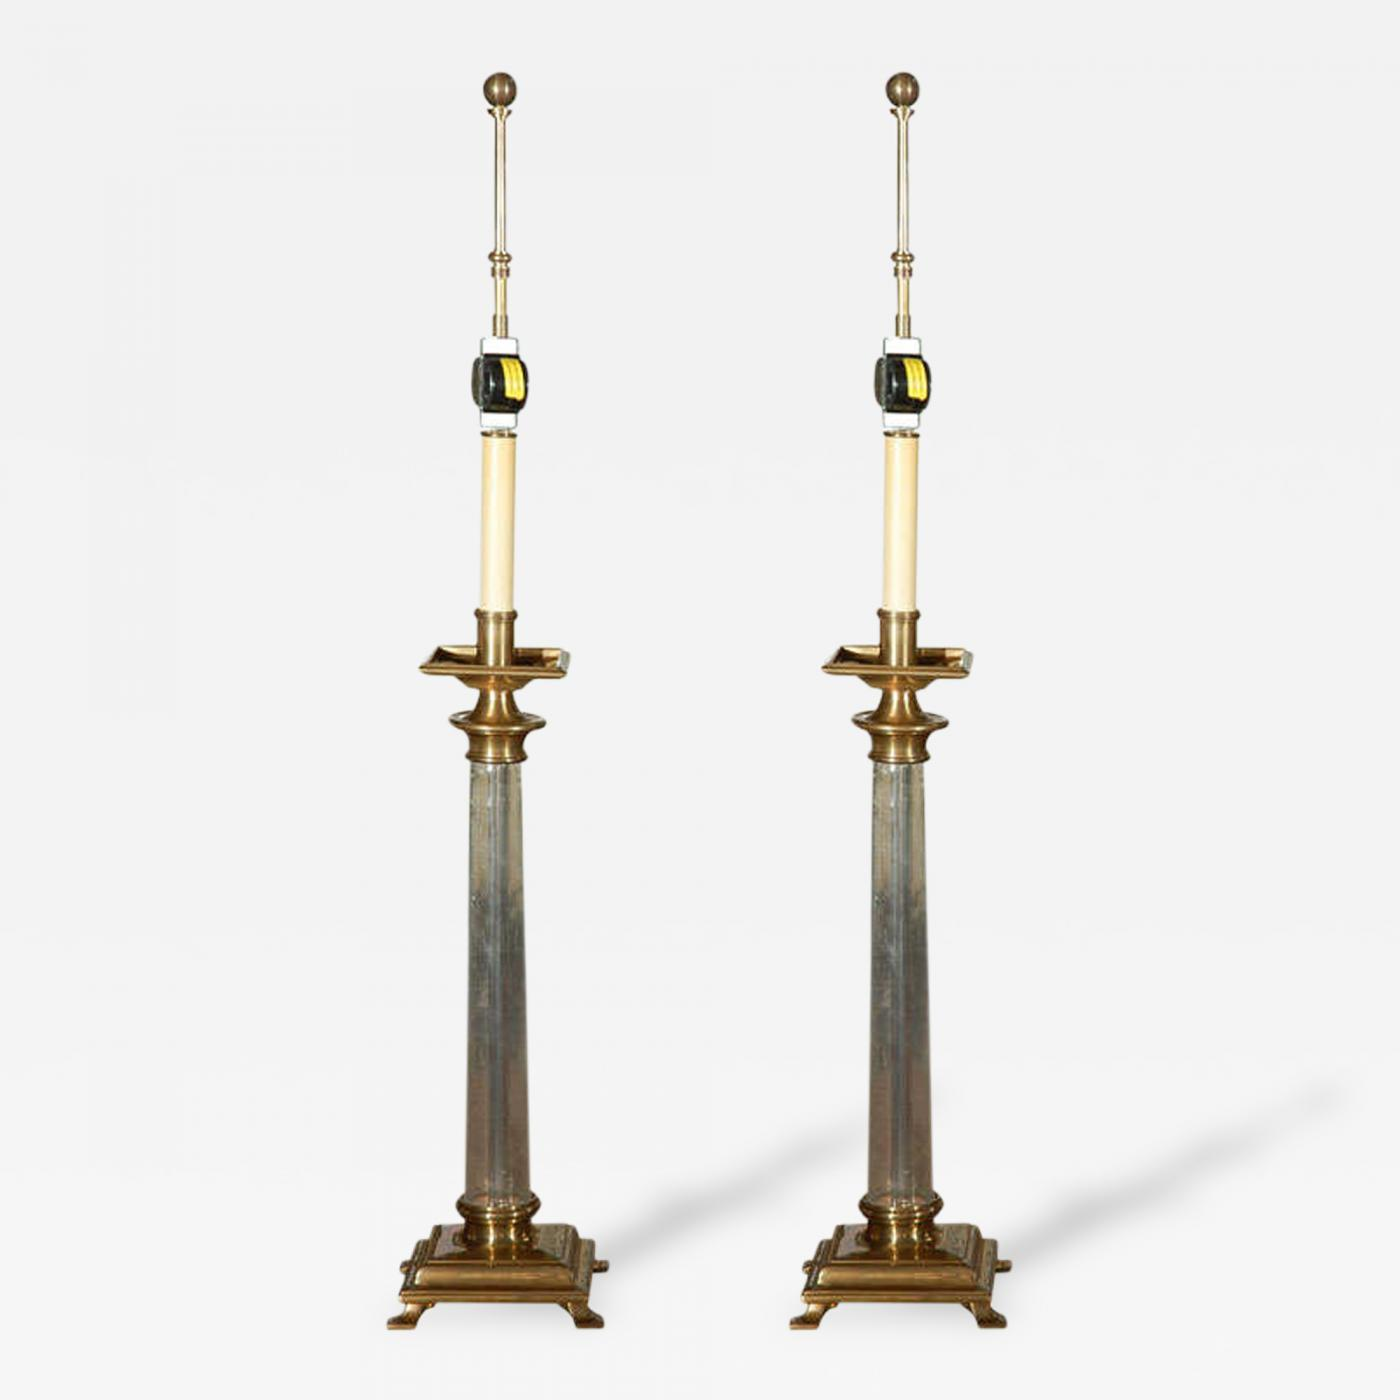 cea104f35db8a Chapman Mfg. Co. - Pair of Glass   Brass Table Lamps by Chapman